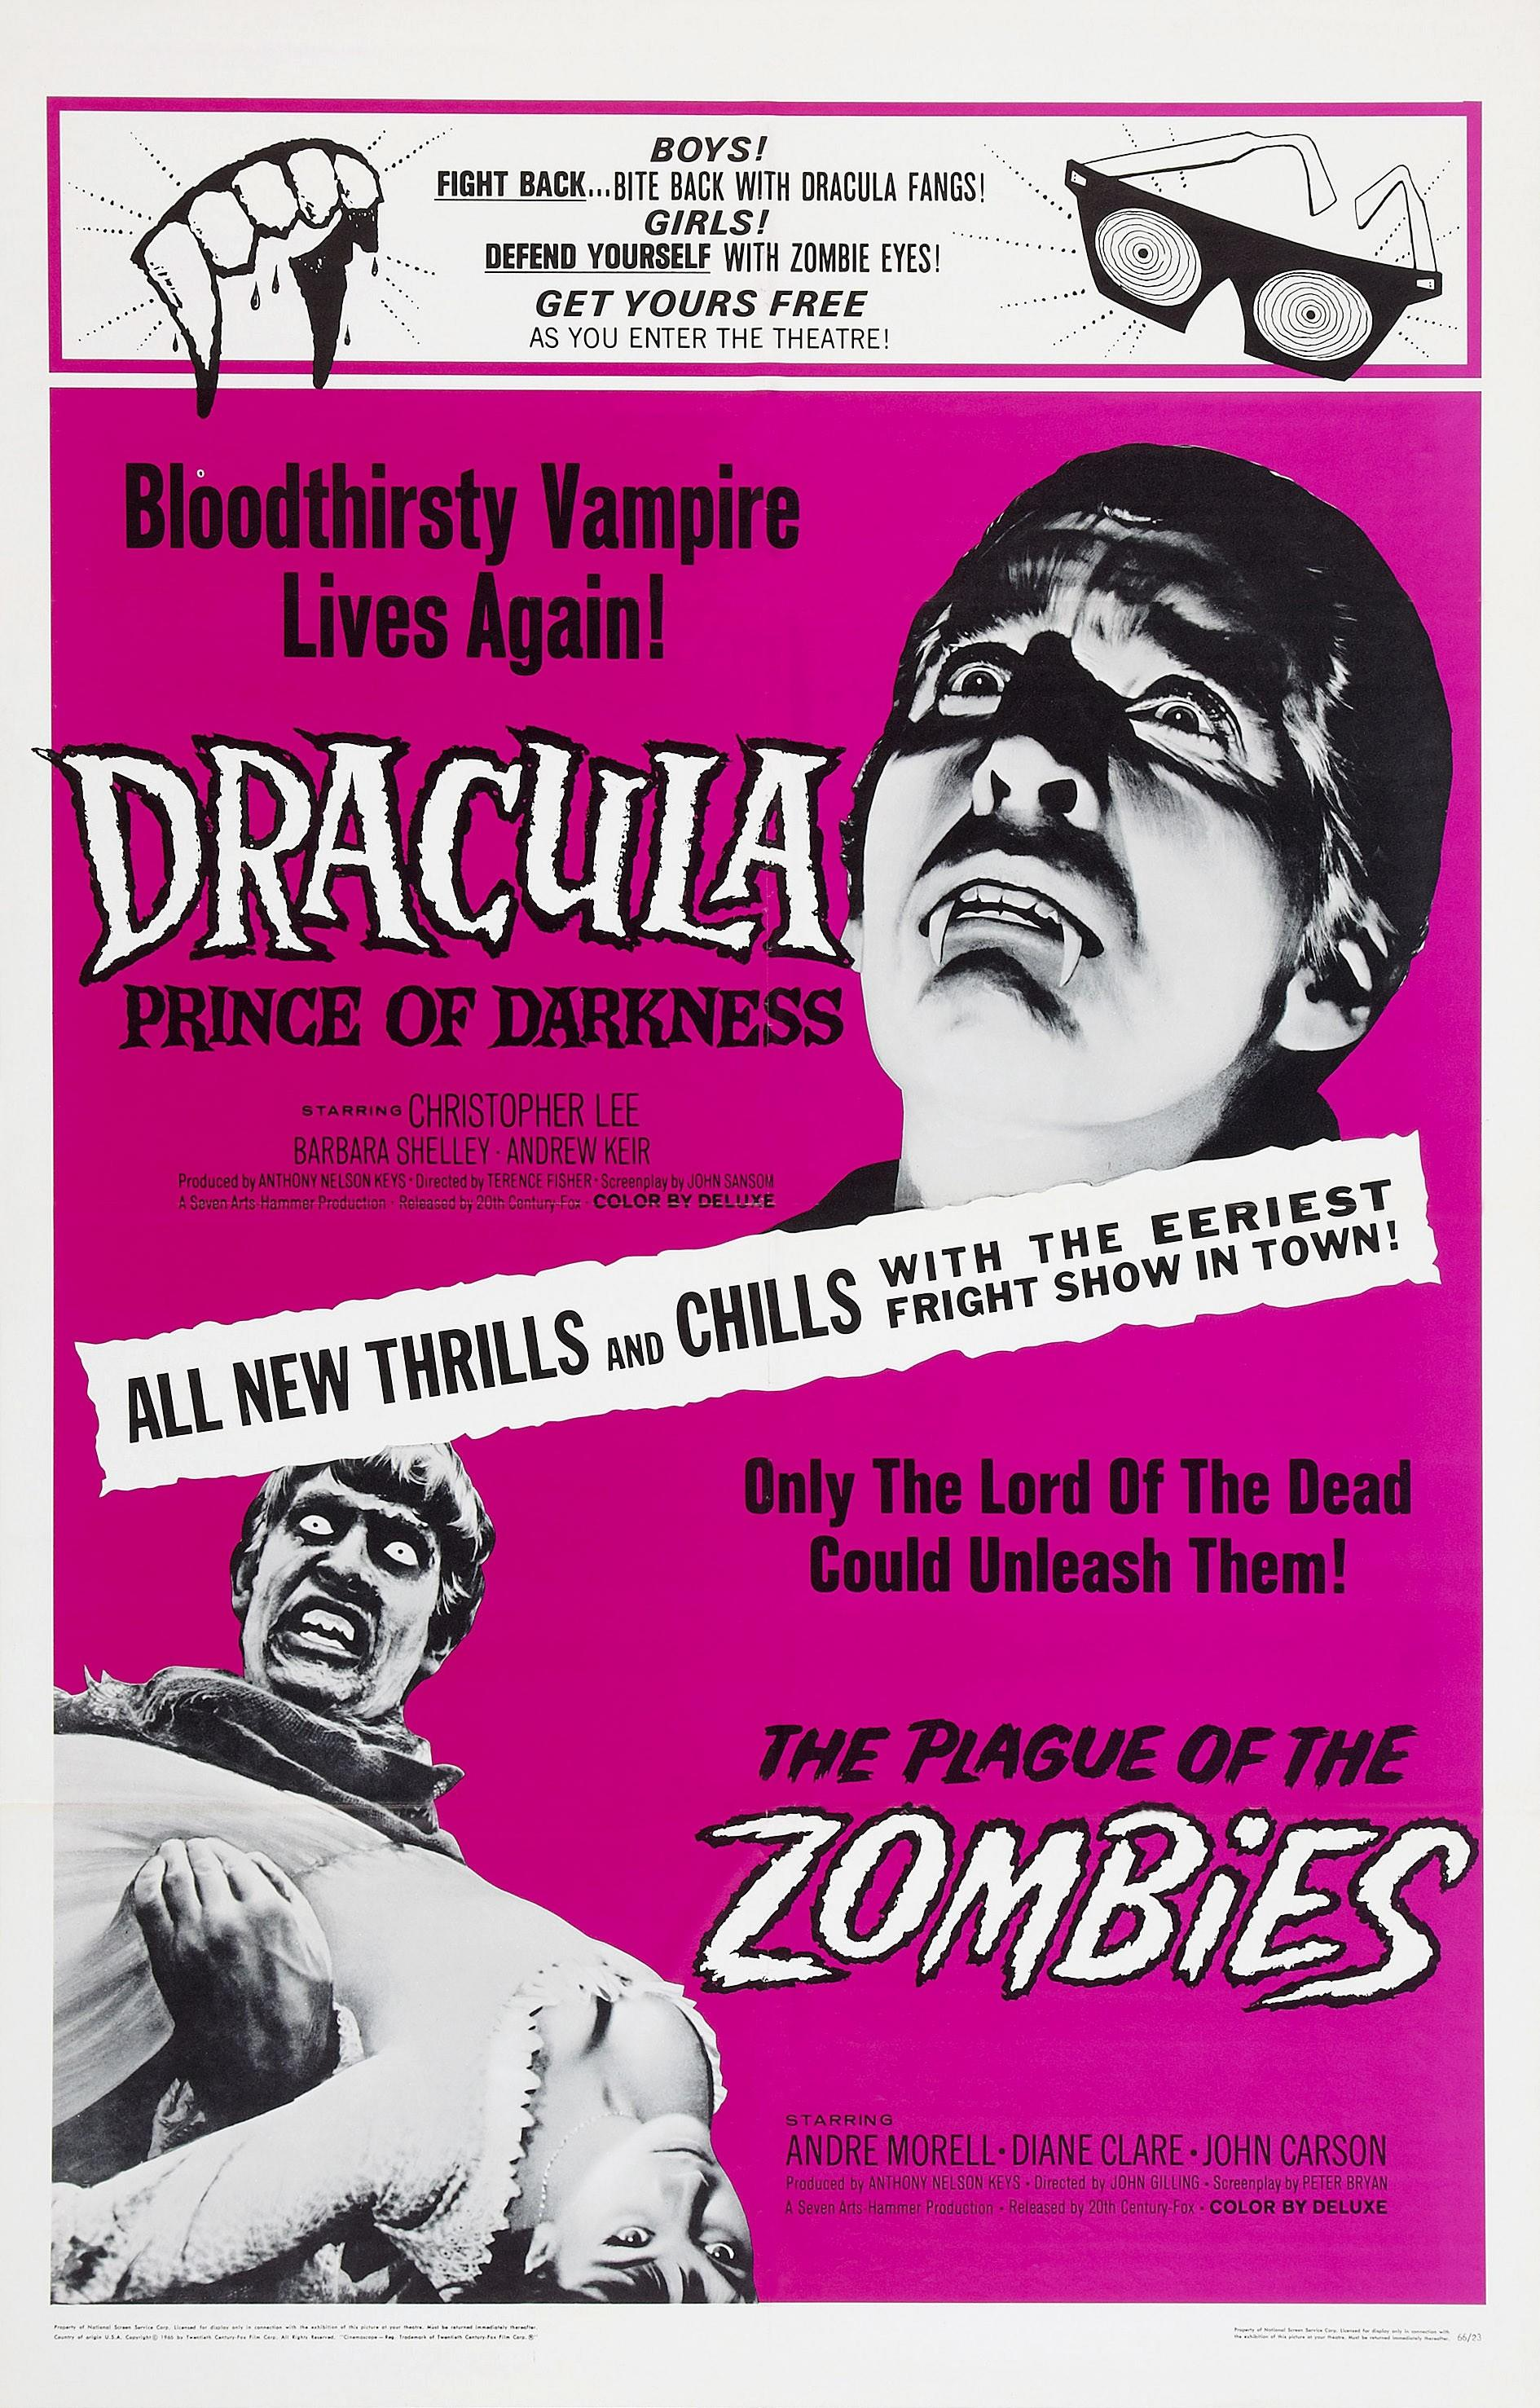 the craziest vampire movie posters youve probably never